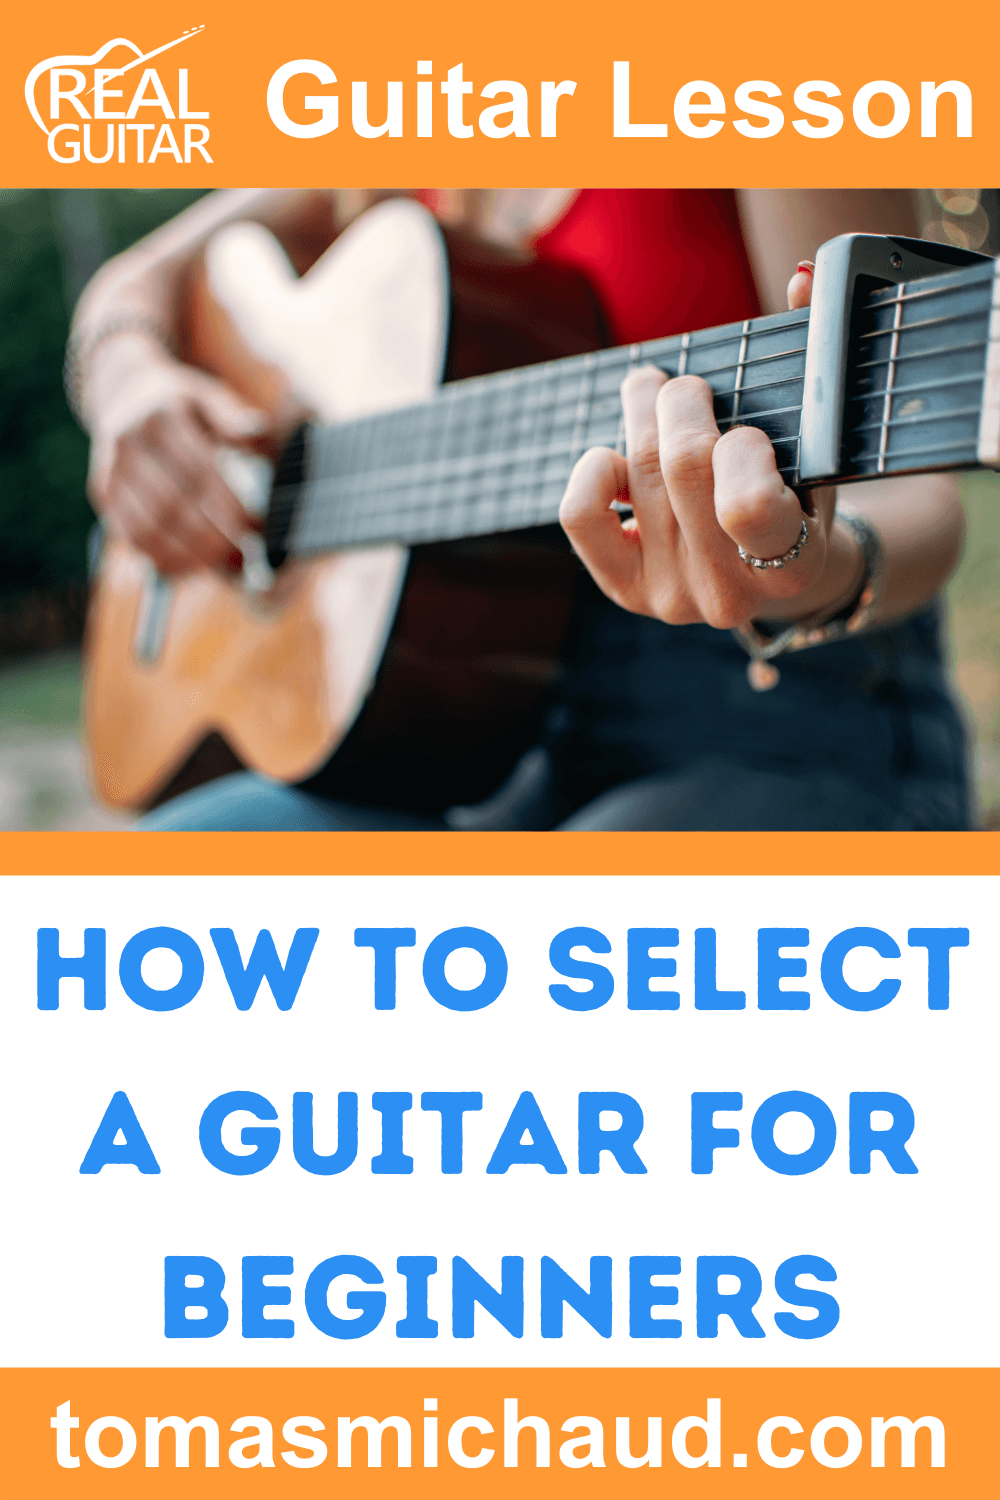 How To Select A Guitar For Beginners